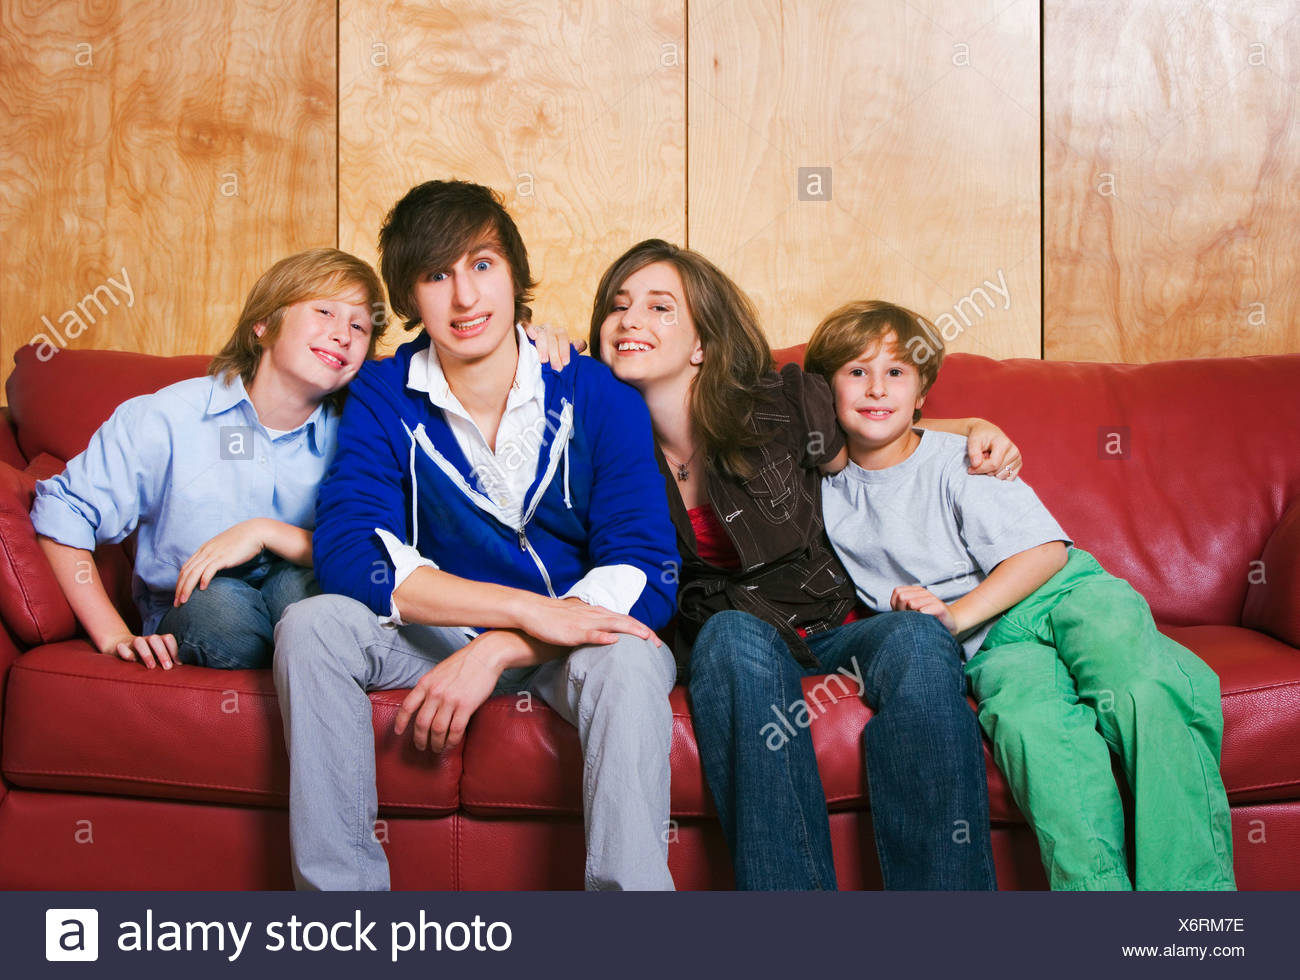 Siblings On A Couch - Stock Image